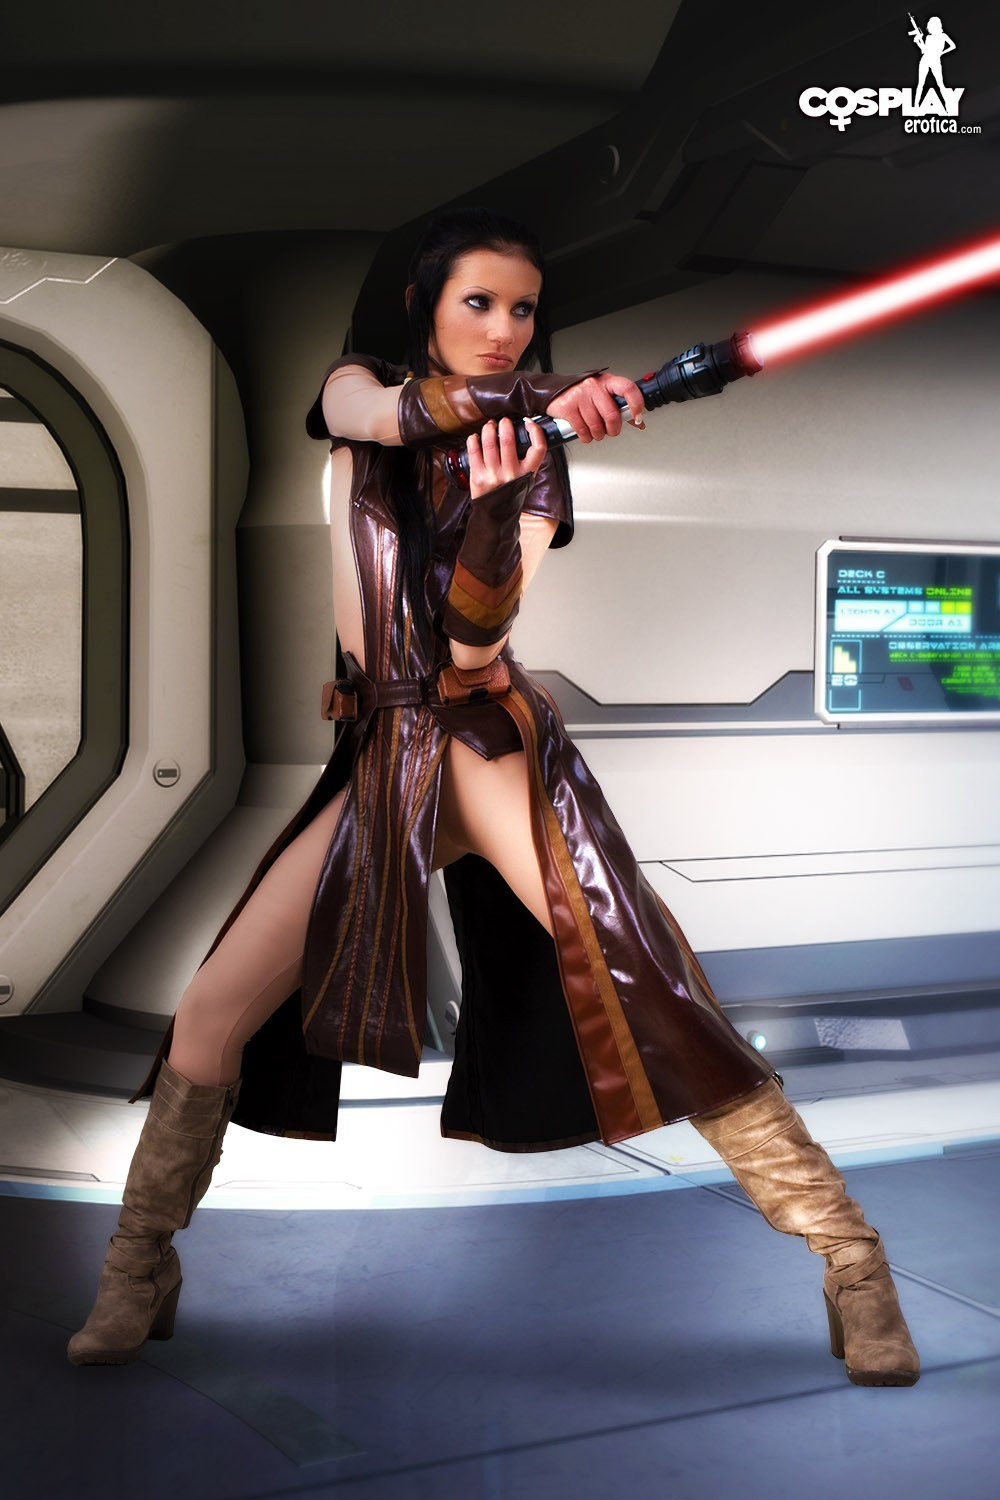 Pictures of star war girls naked porno videos